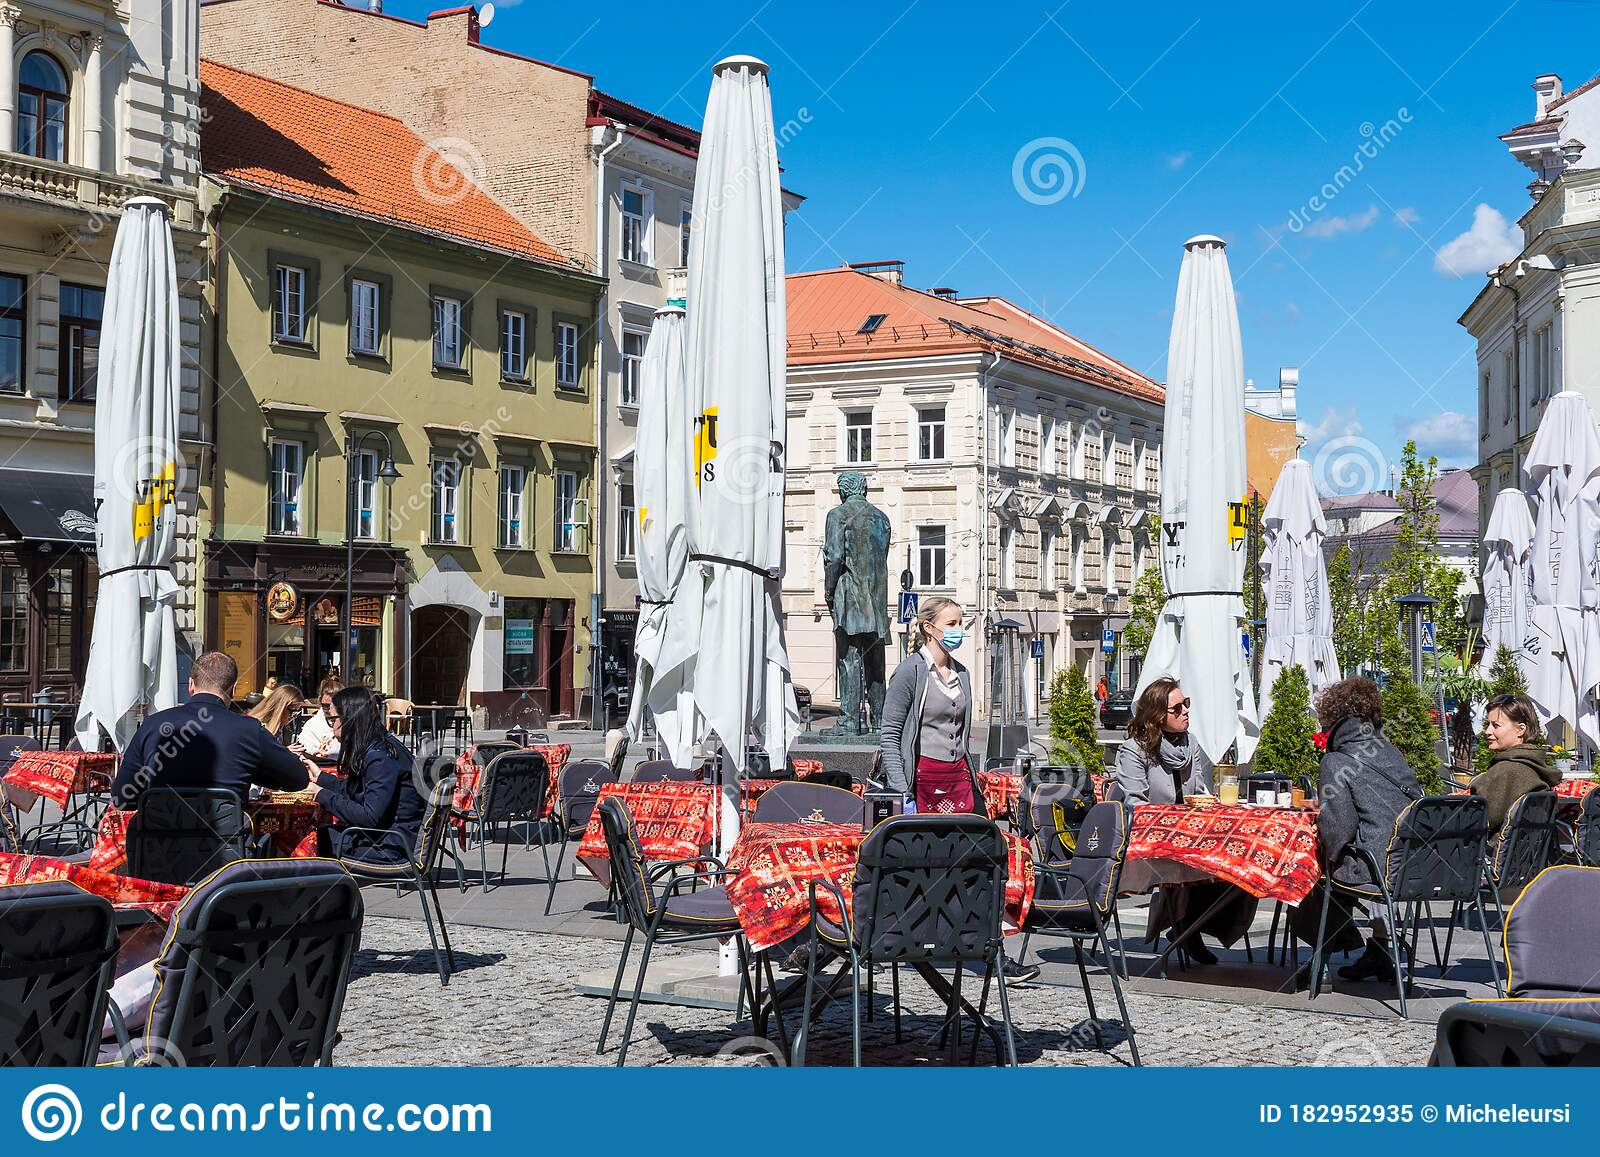 Outdoor Bar And Restaurant With Clients And Waitress With Mask Editorial Image Image Of Lithuania Physical 182952935